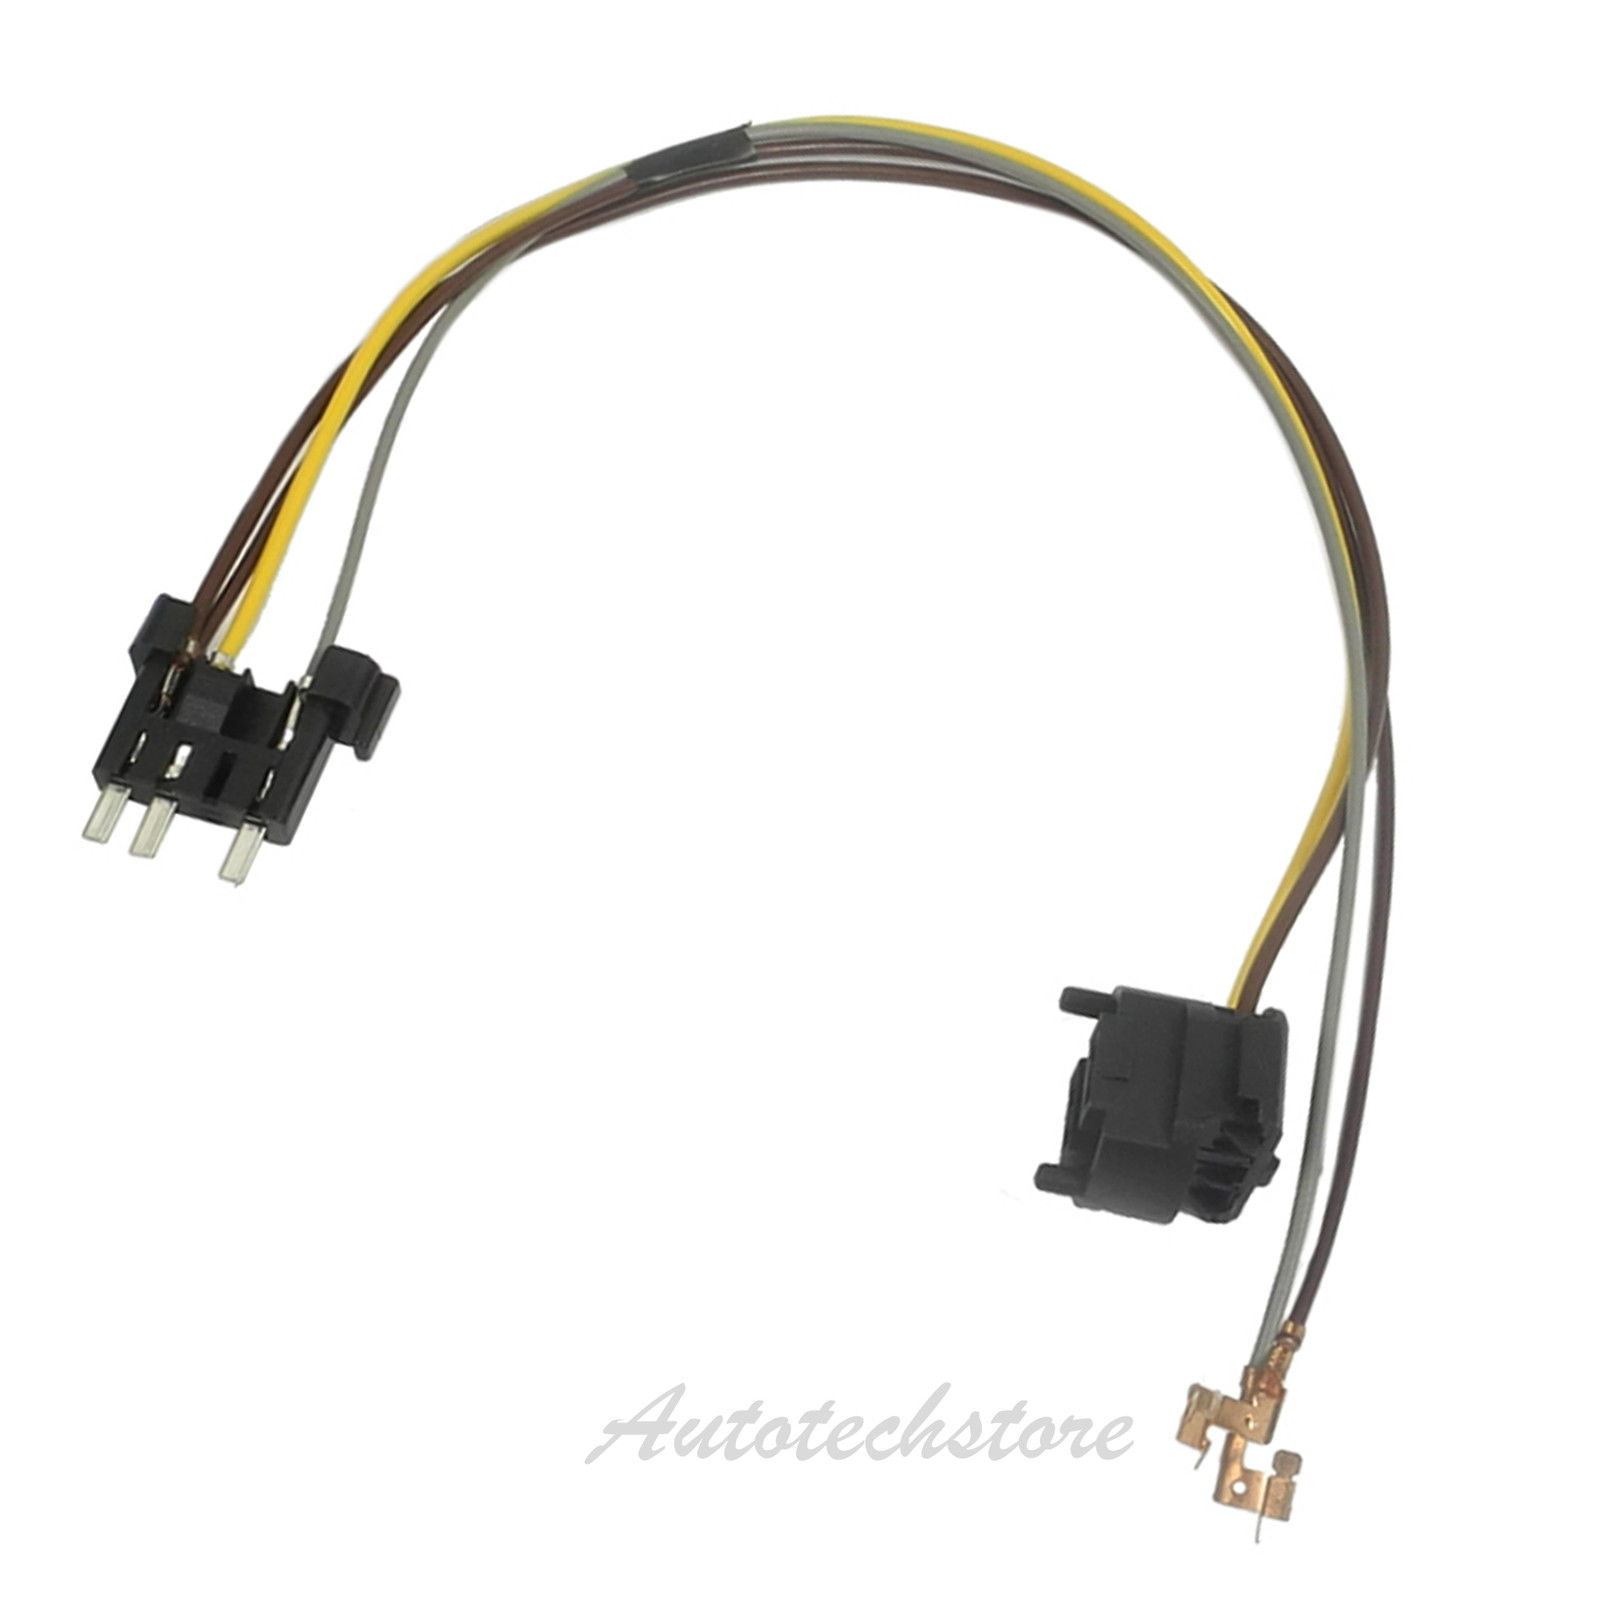 hight resolution of details about right headlight wiring harness repair for w211 e280 e300 e320 e350 e550 d123r